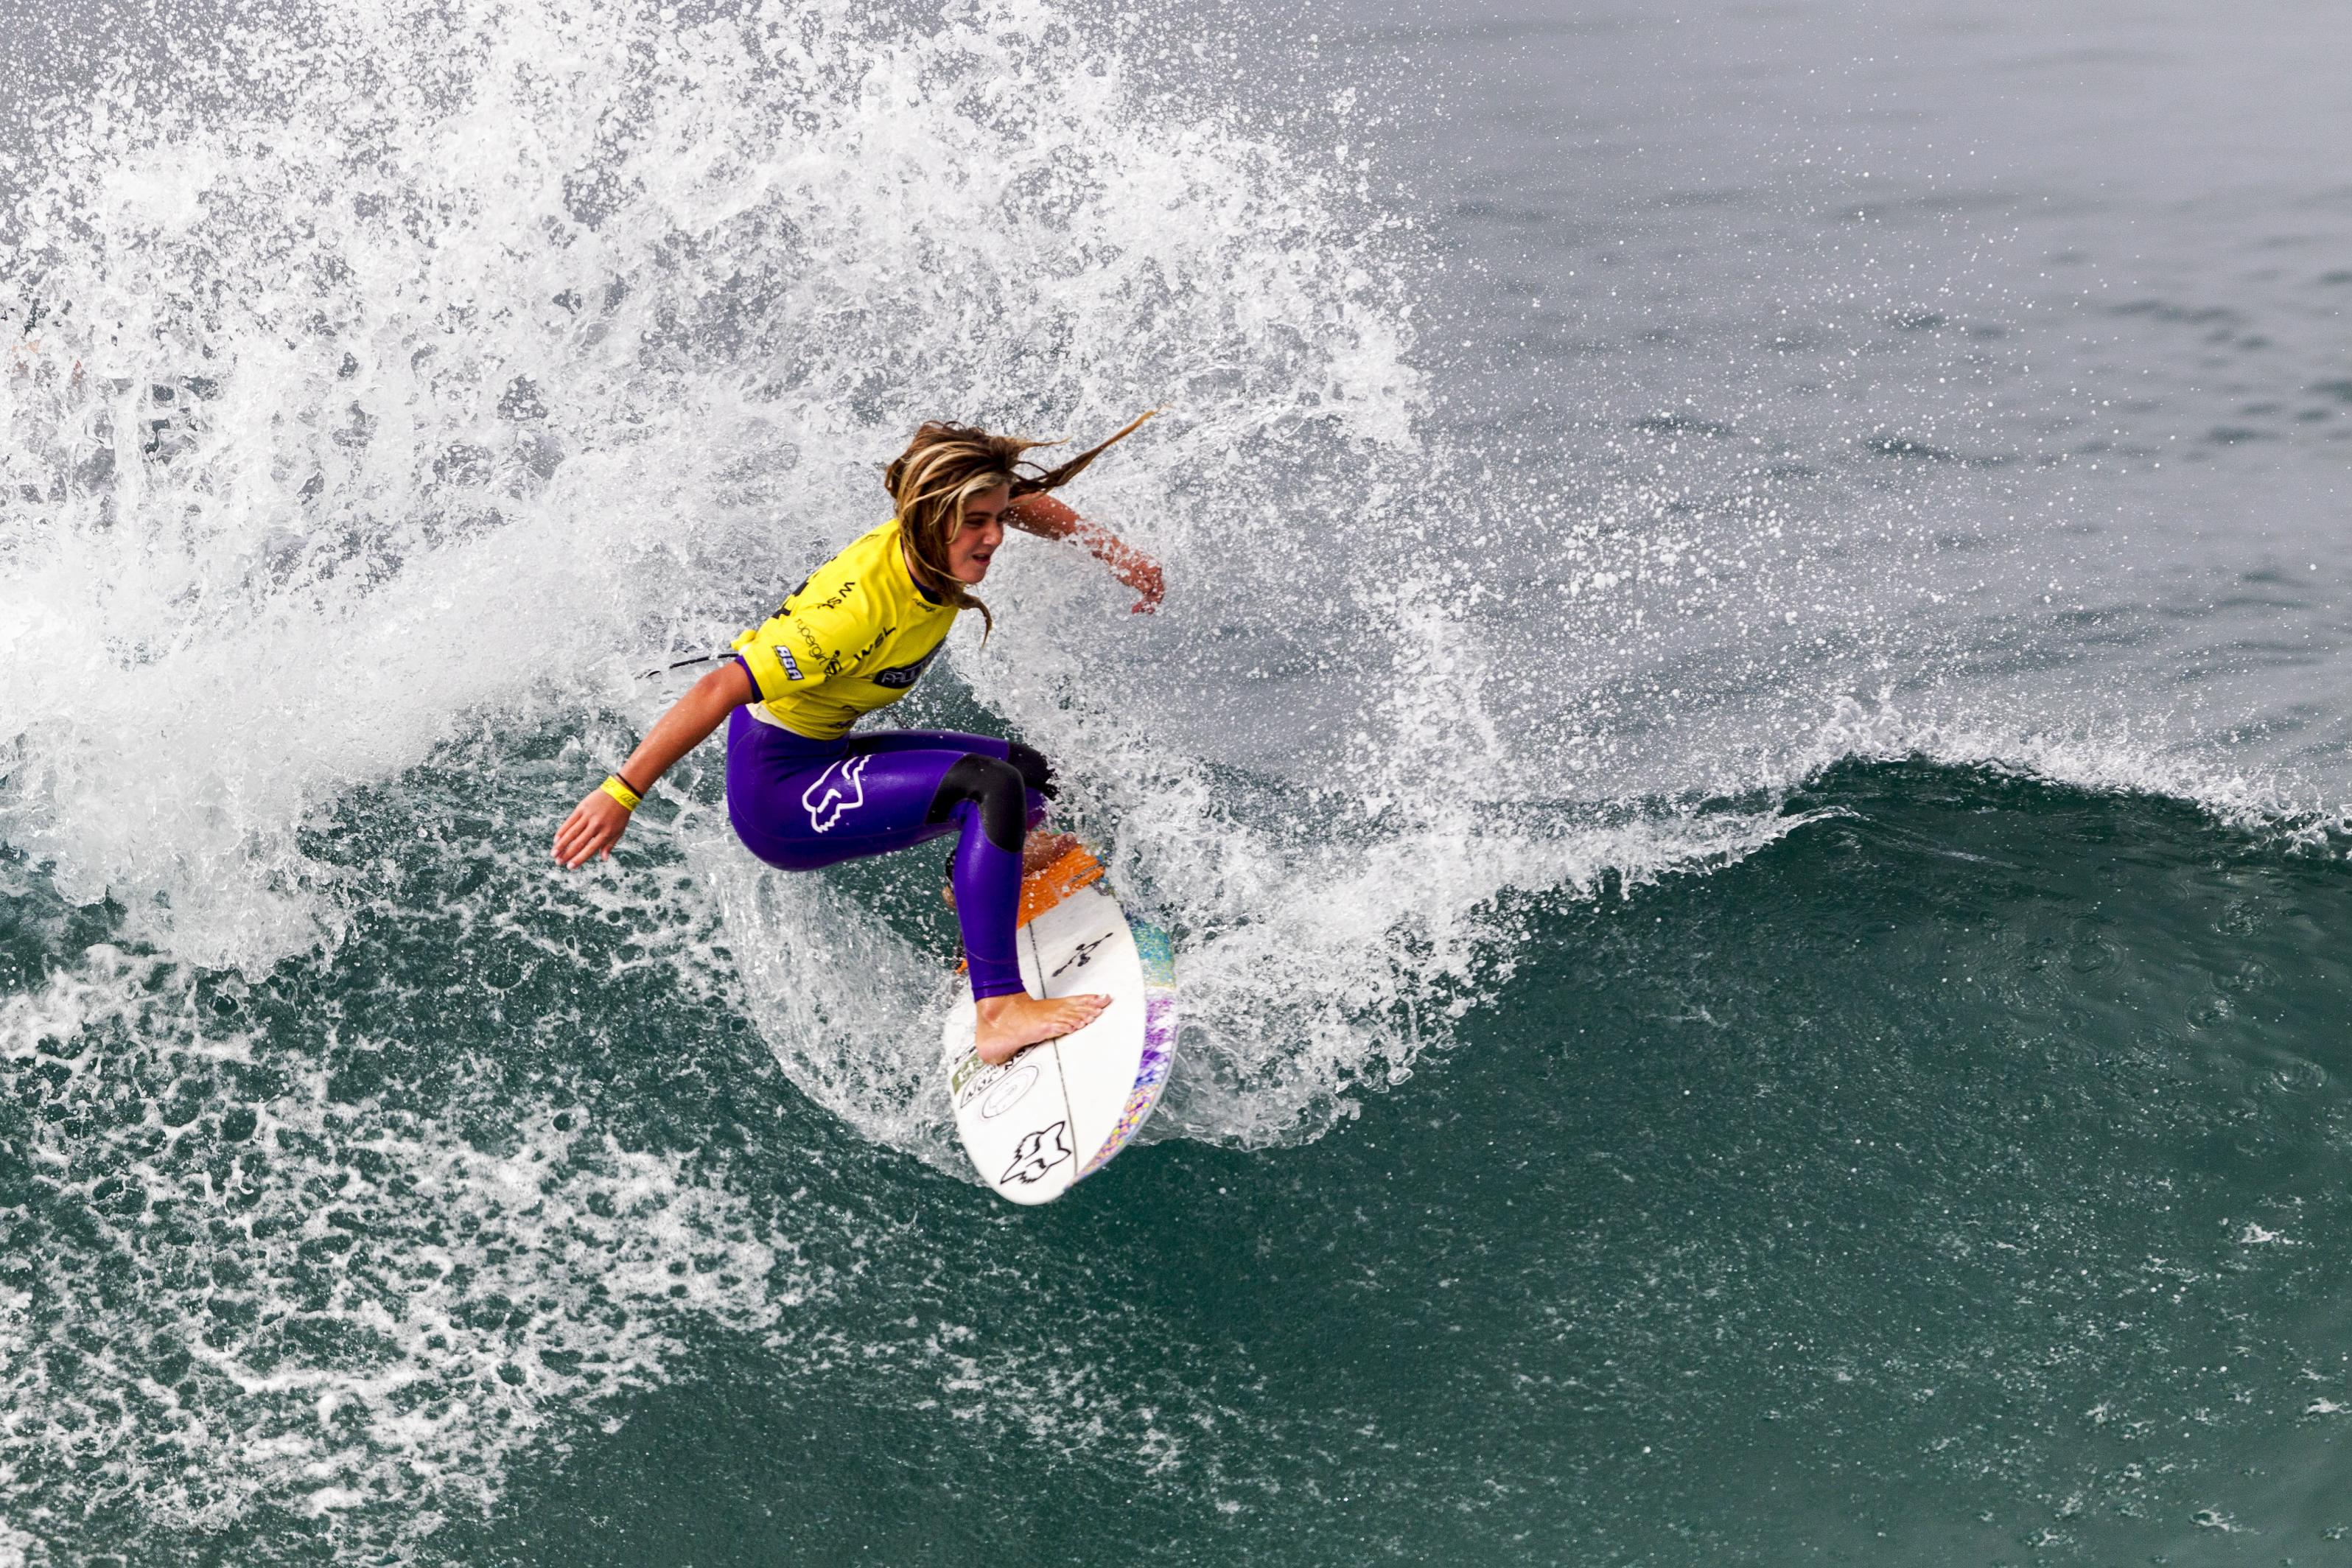 U.S. surfer Caroline Marks competes in the 2015 Supergirl Pro in Oceanside. Photo by Bill Reilly